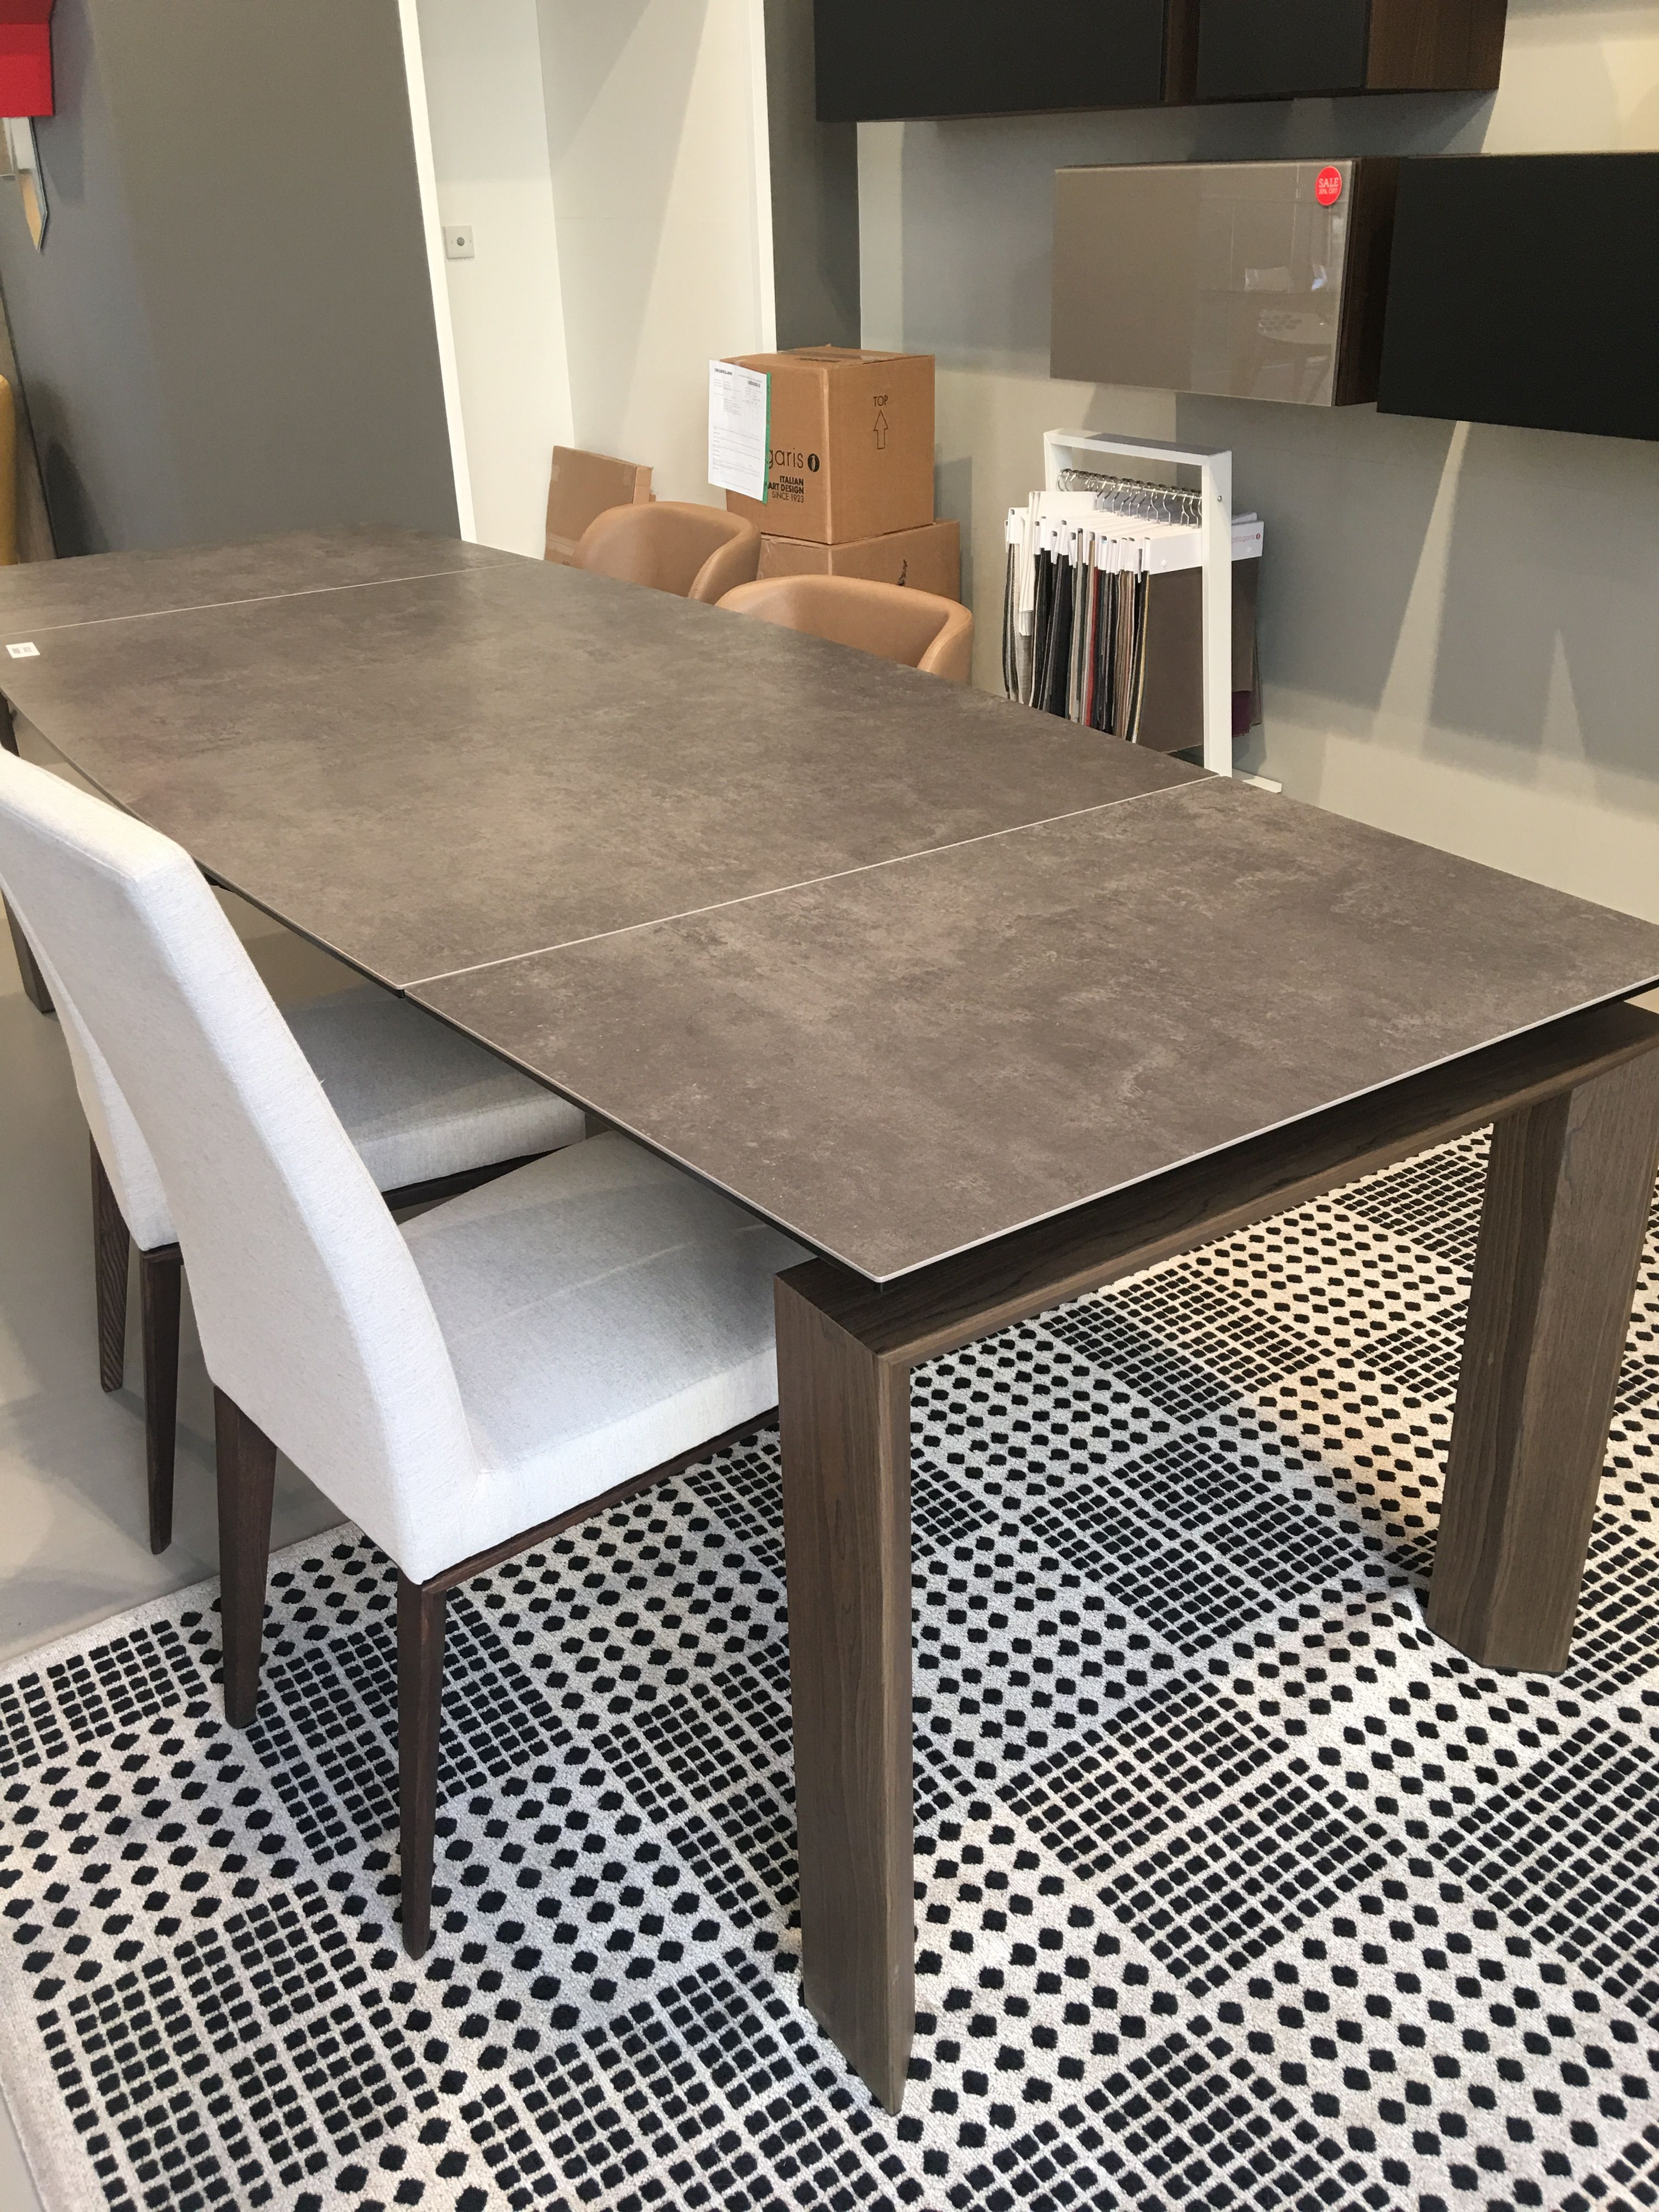 Calligaris table | Home decor nel 2019 | Tavolo calligaris ...